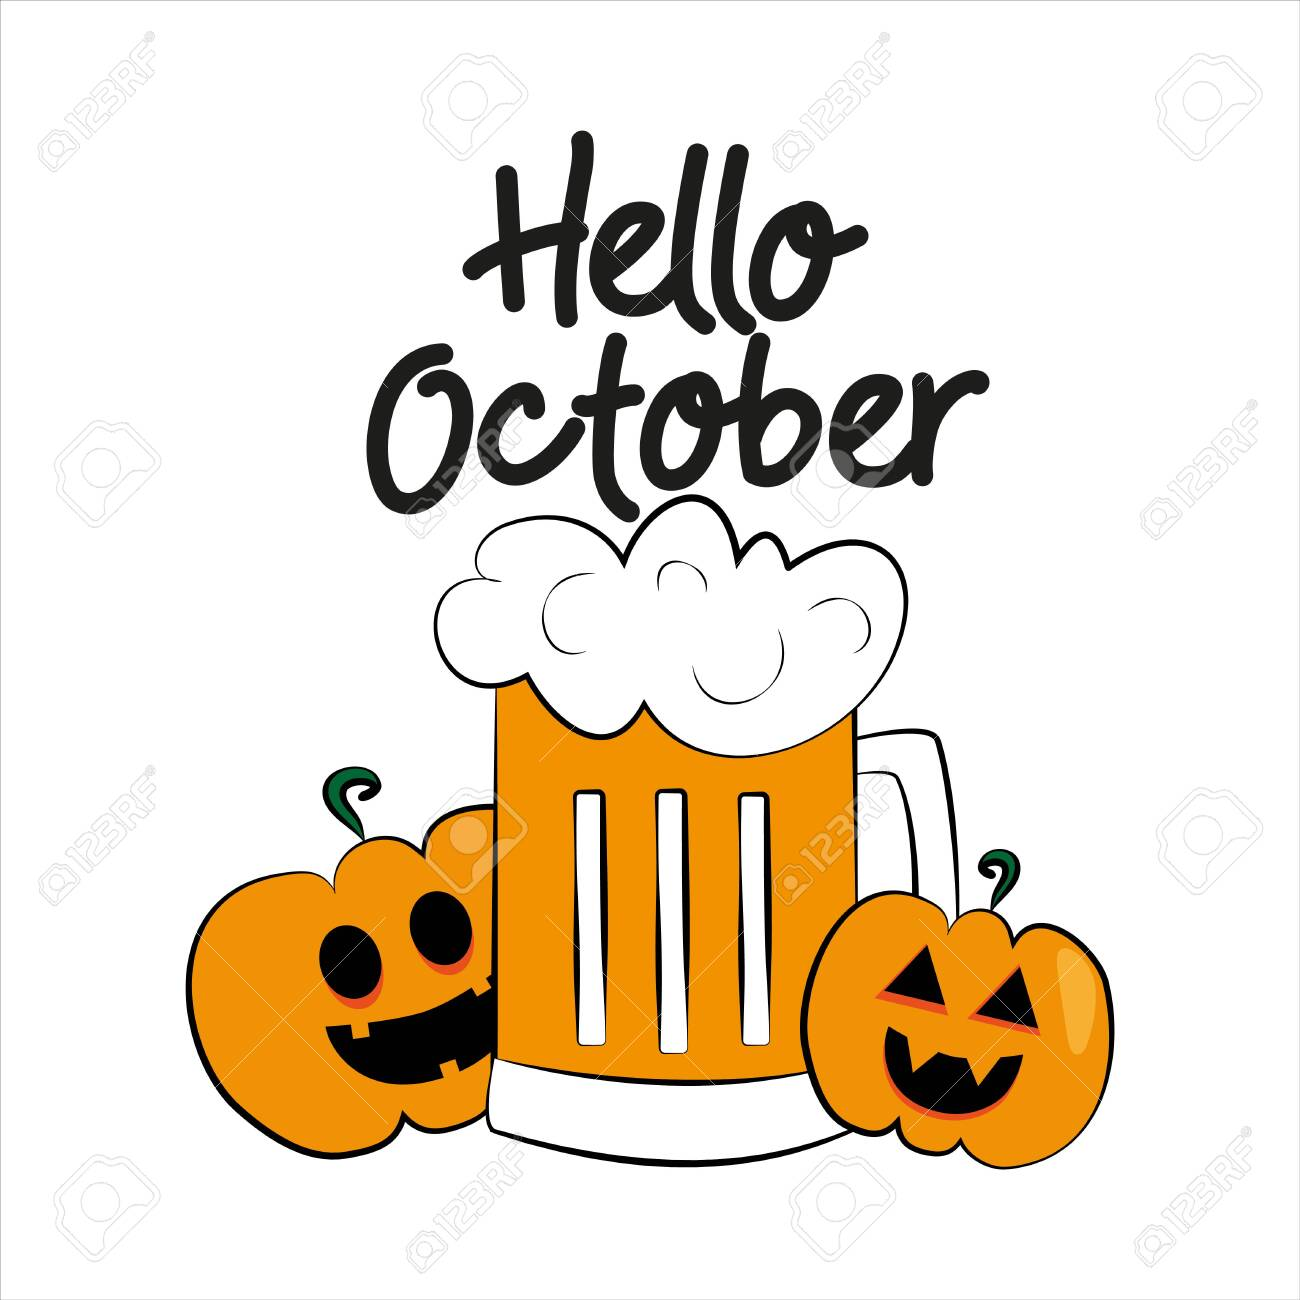 Hello October Autumn Or Halloween Text With Colorful Beer Mug Royalty Free Cliparts Vectors And Stock Illustration Image 150557420